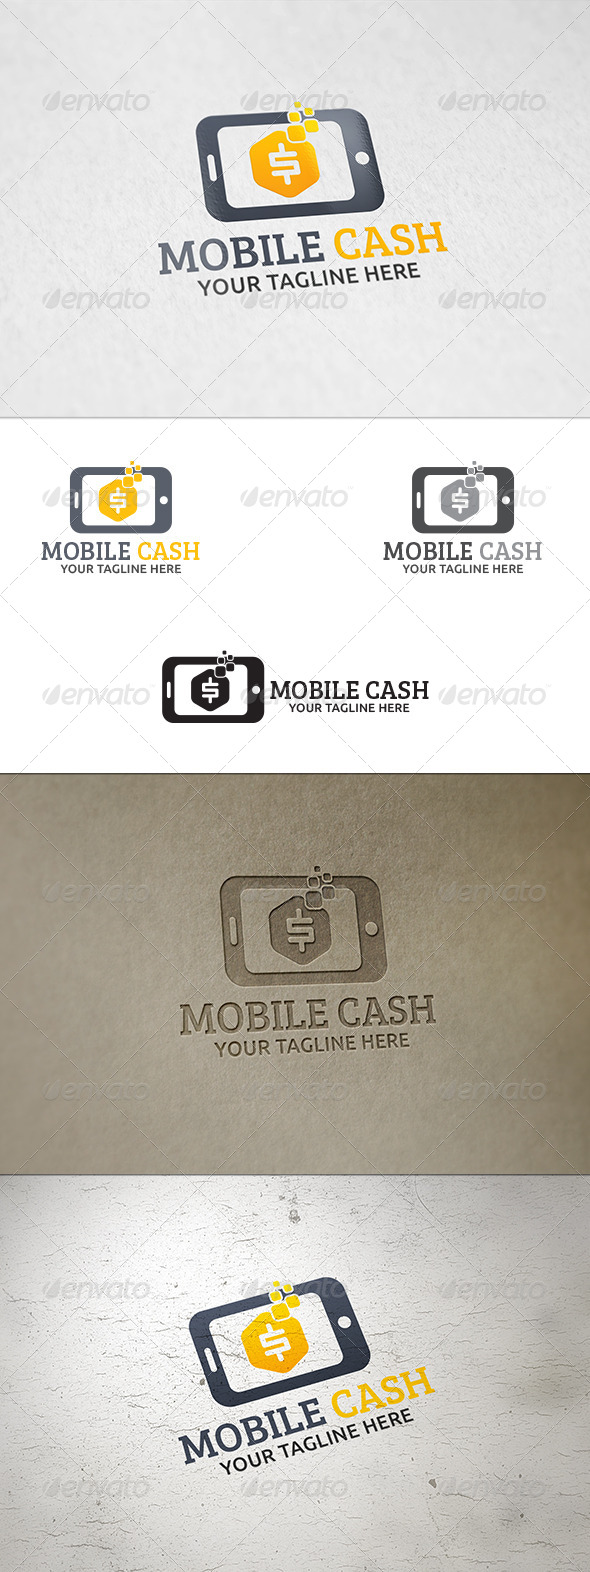 Mobile Cash Logo Template